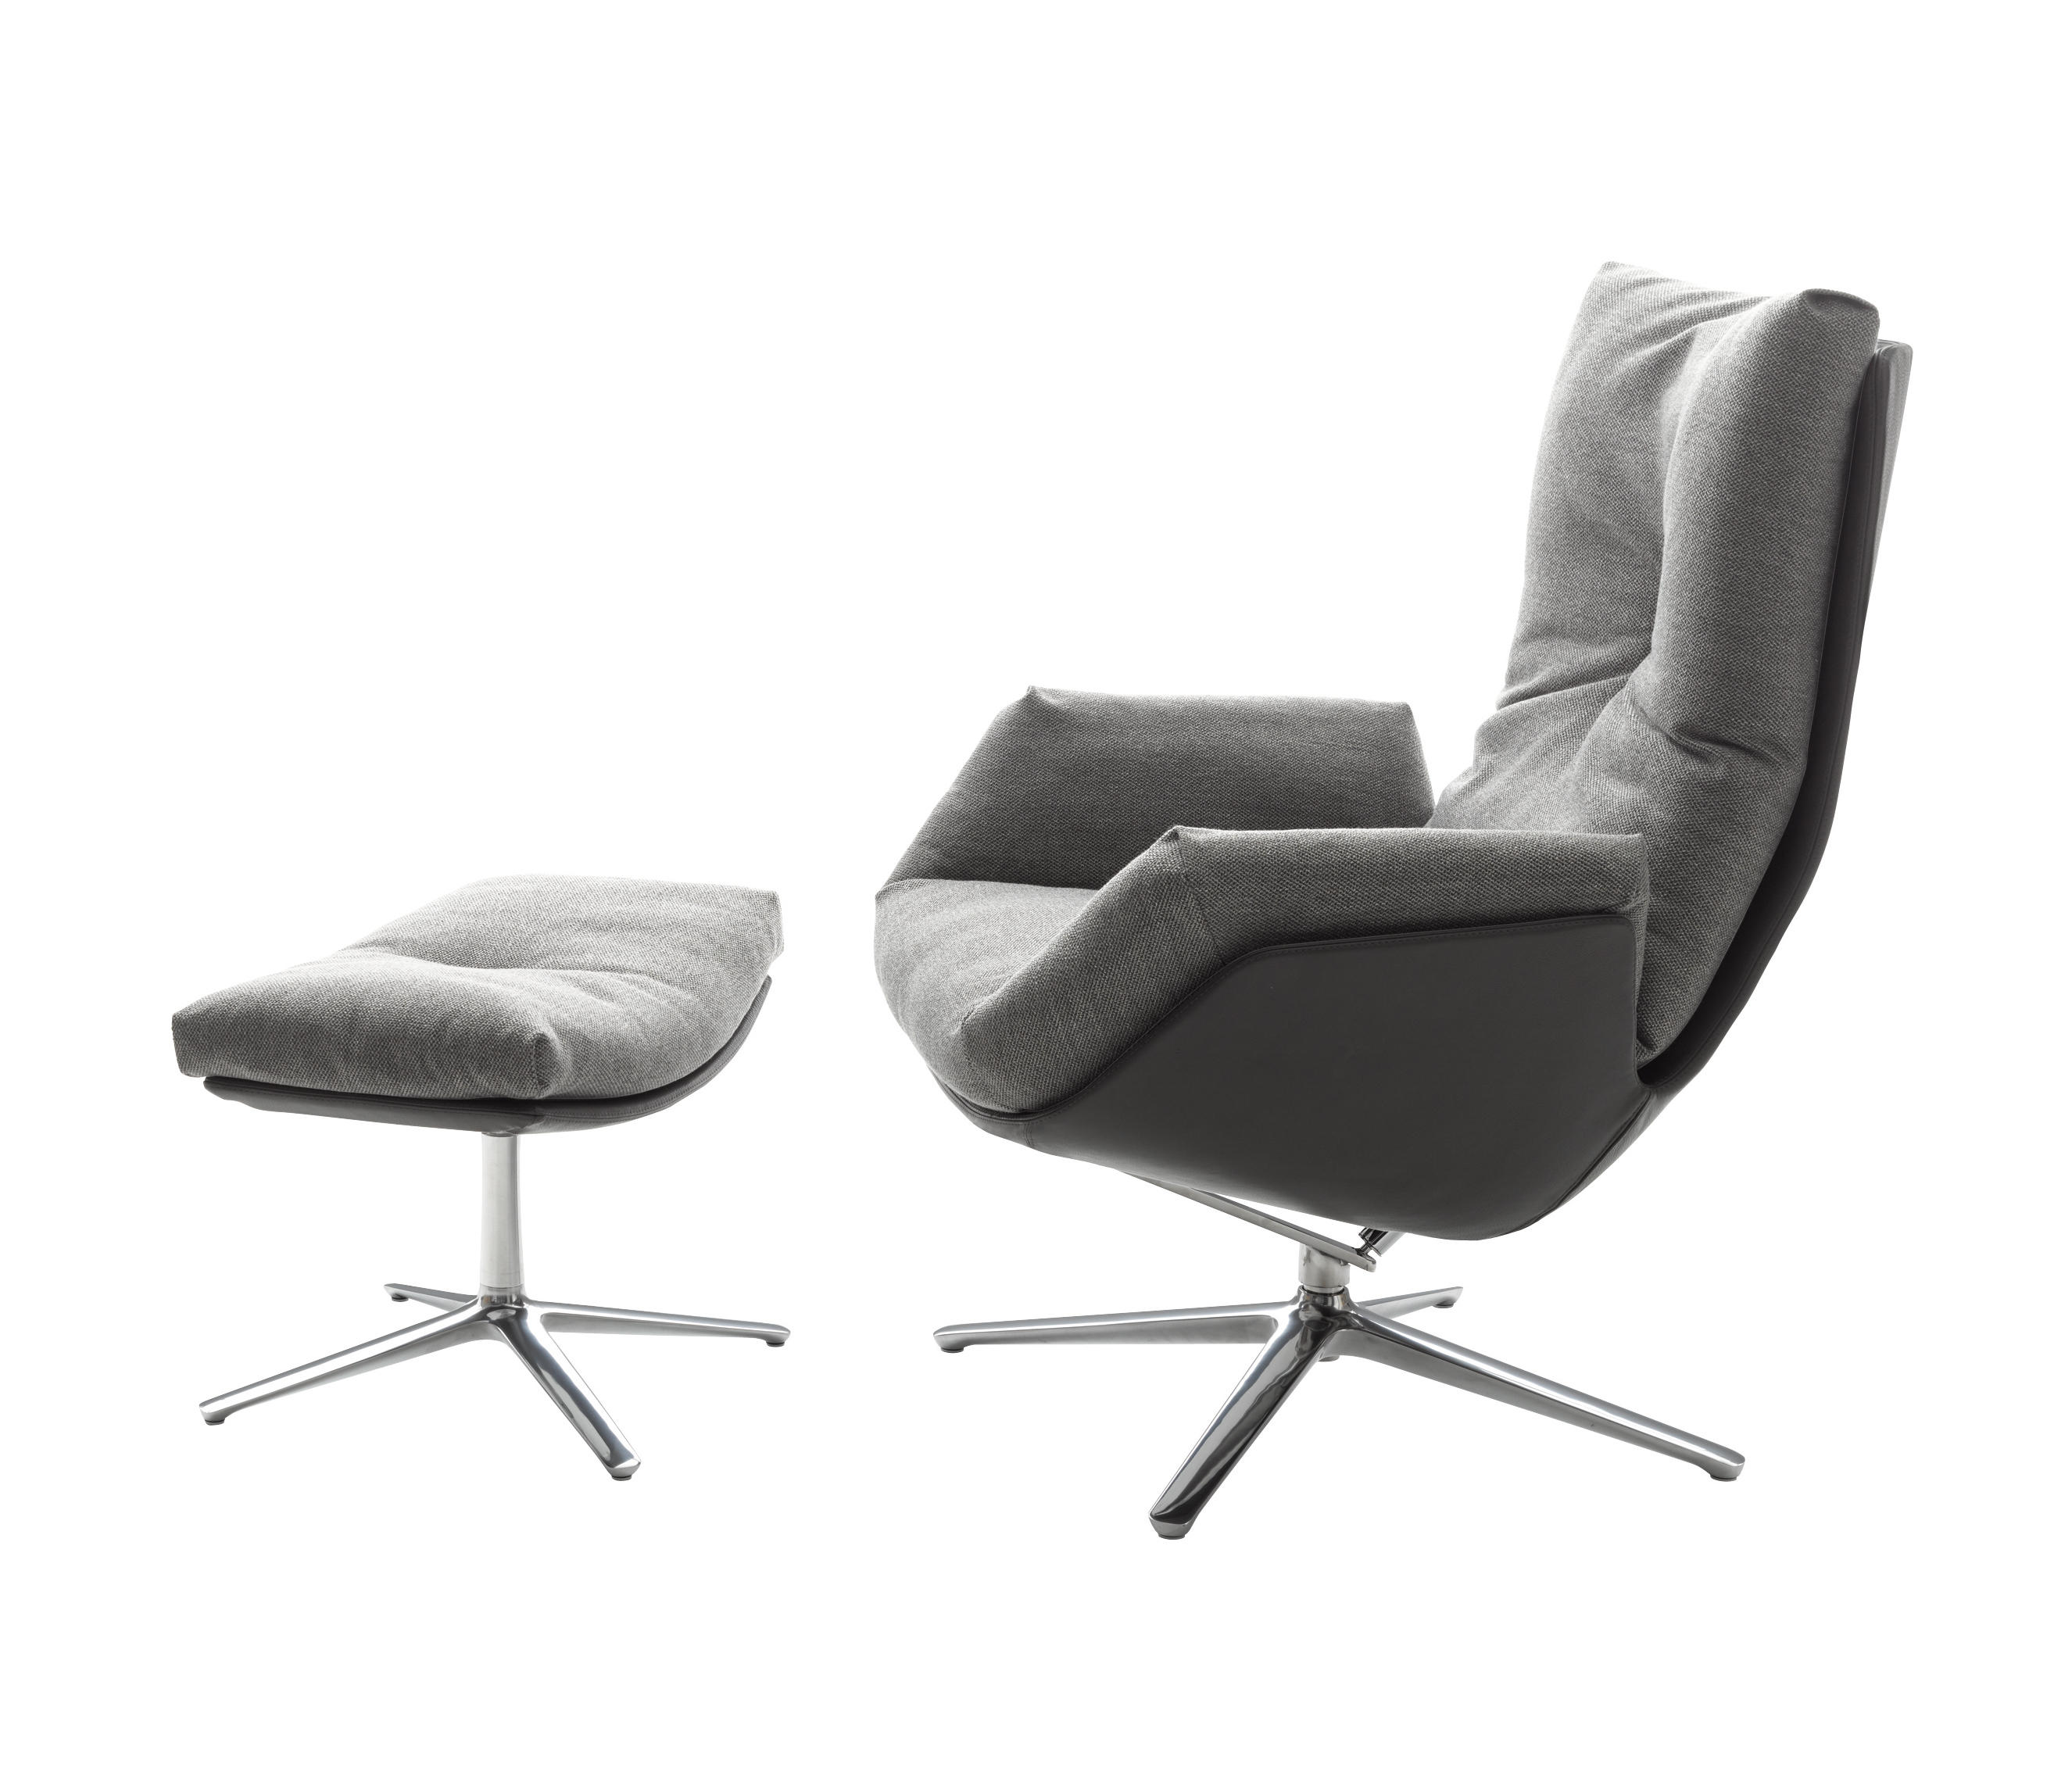 cordia lounge lounge chairs from cor architonic. Black Bedroom Furniture Sets. Home Design Ideas